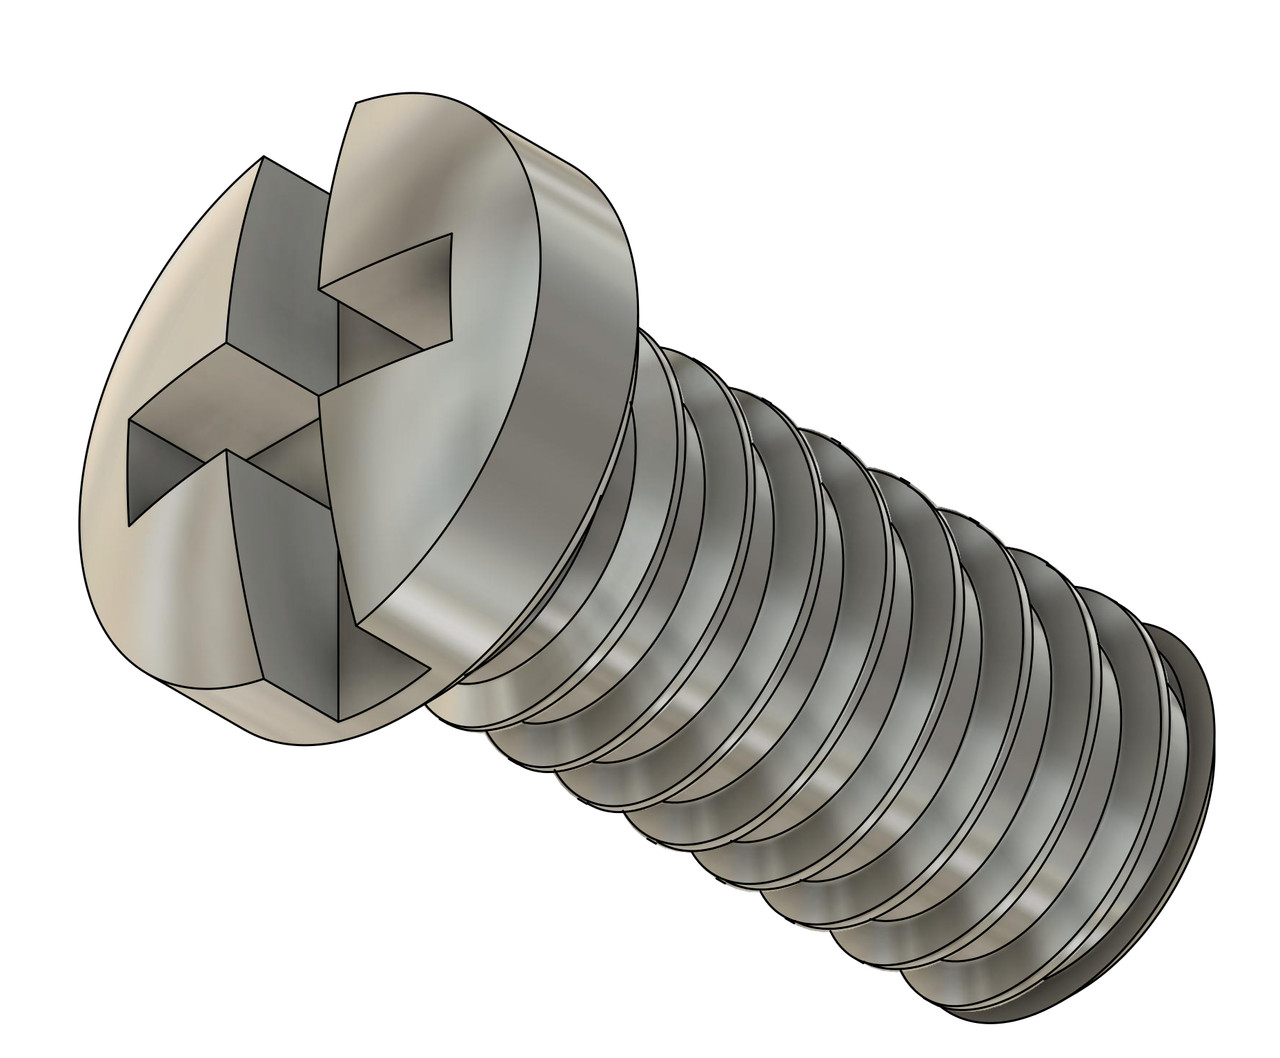 Thread M1.4 pitch .30mm length 2.7mm Machine Screw Pan Head with Philips X-Slot drive overall length 3.5mm material stainless steel, 100 count package